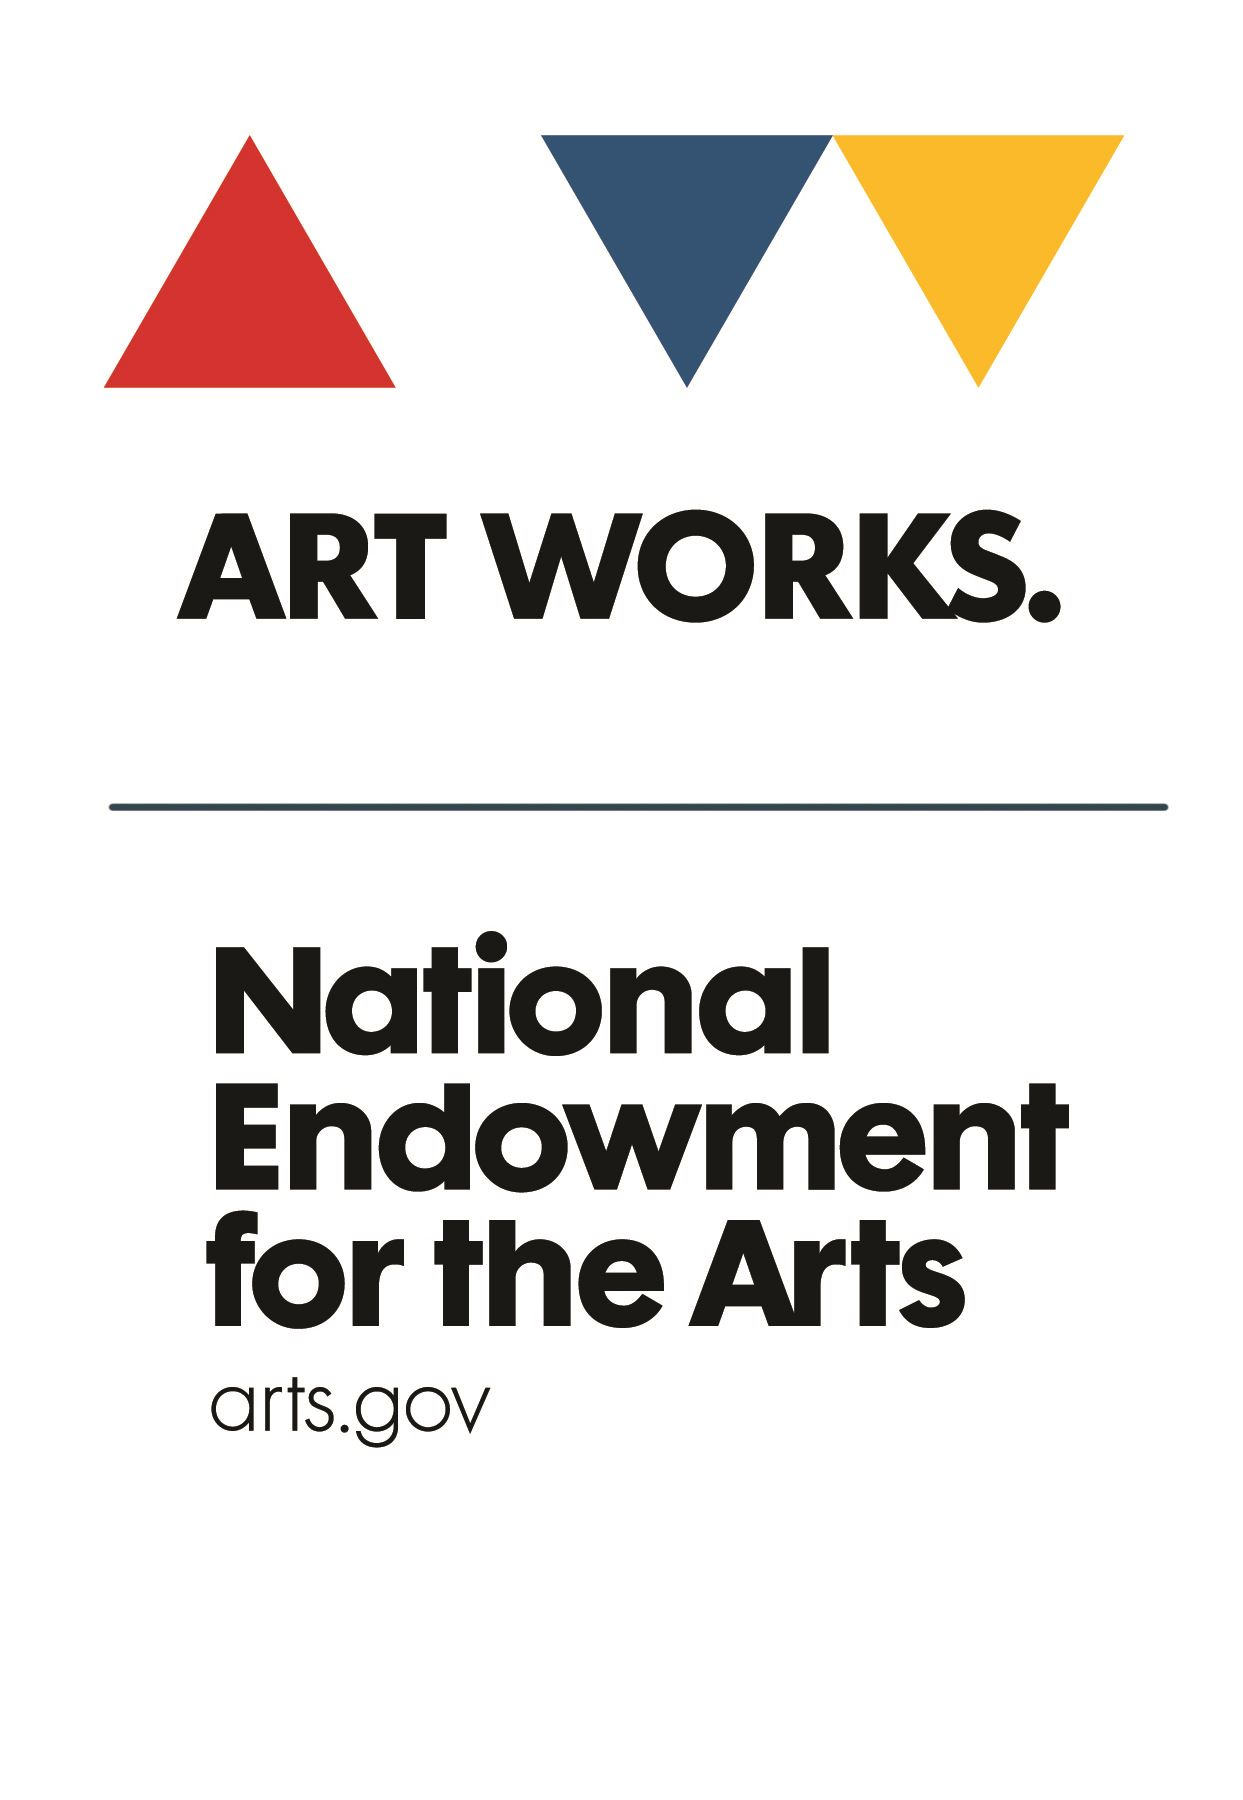 National Endowment For The Arts Art Works Logo